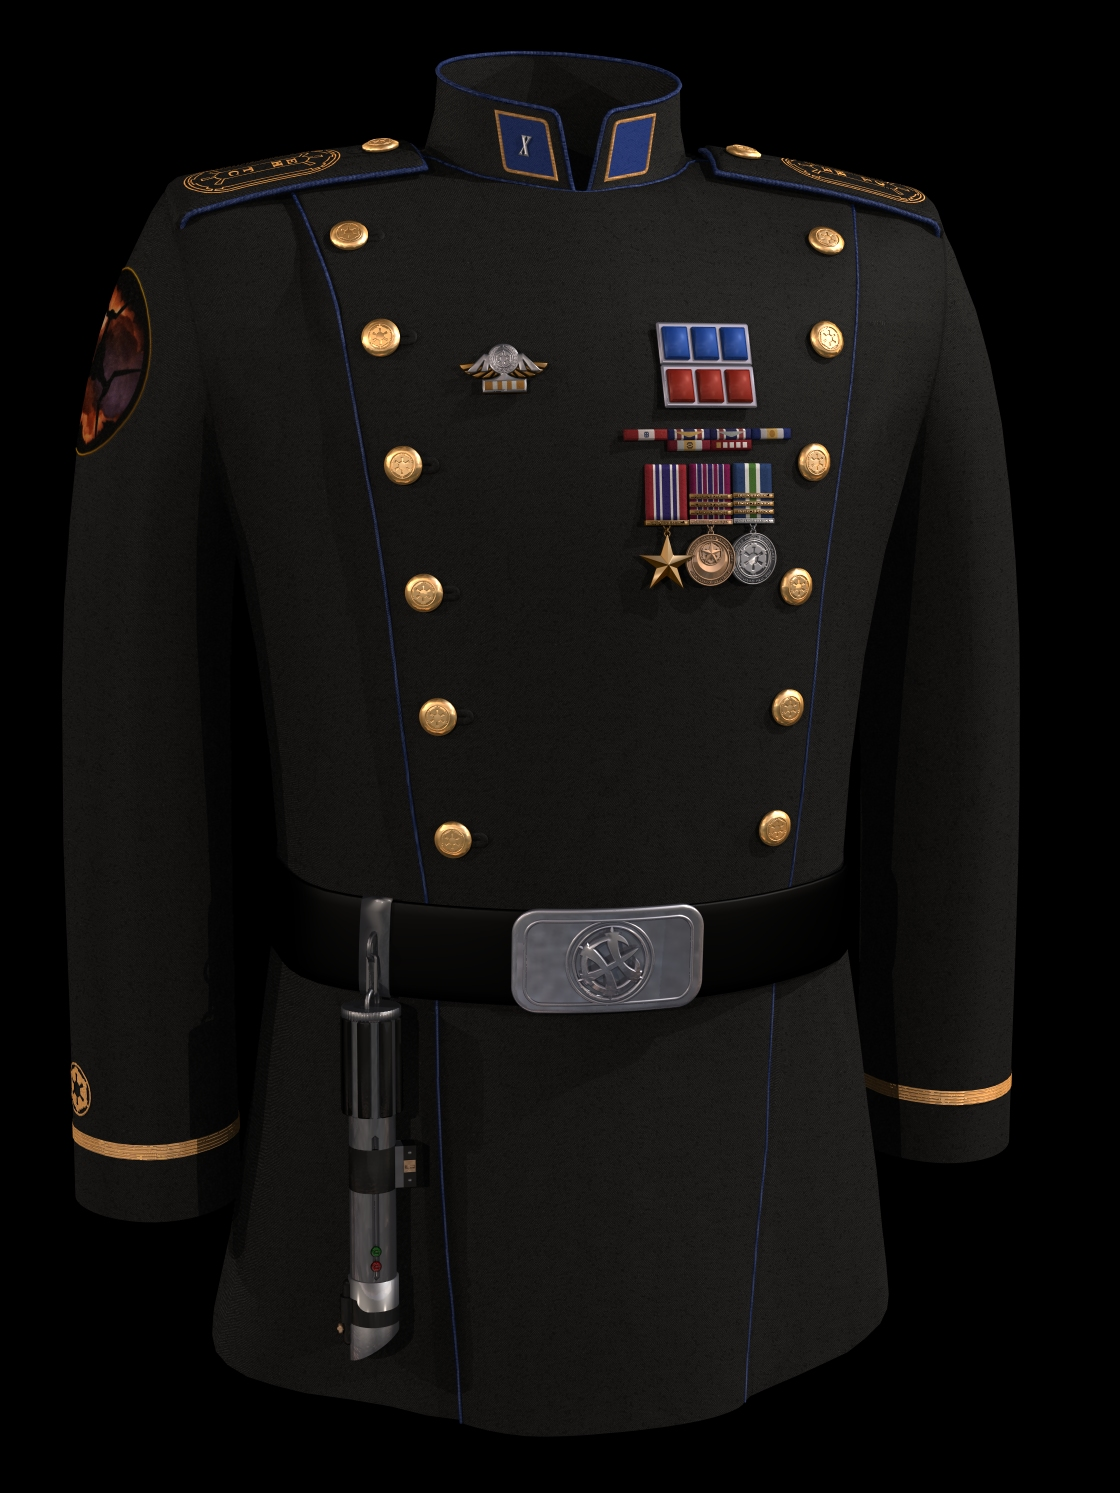 CPT APanasyuk's Uniform